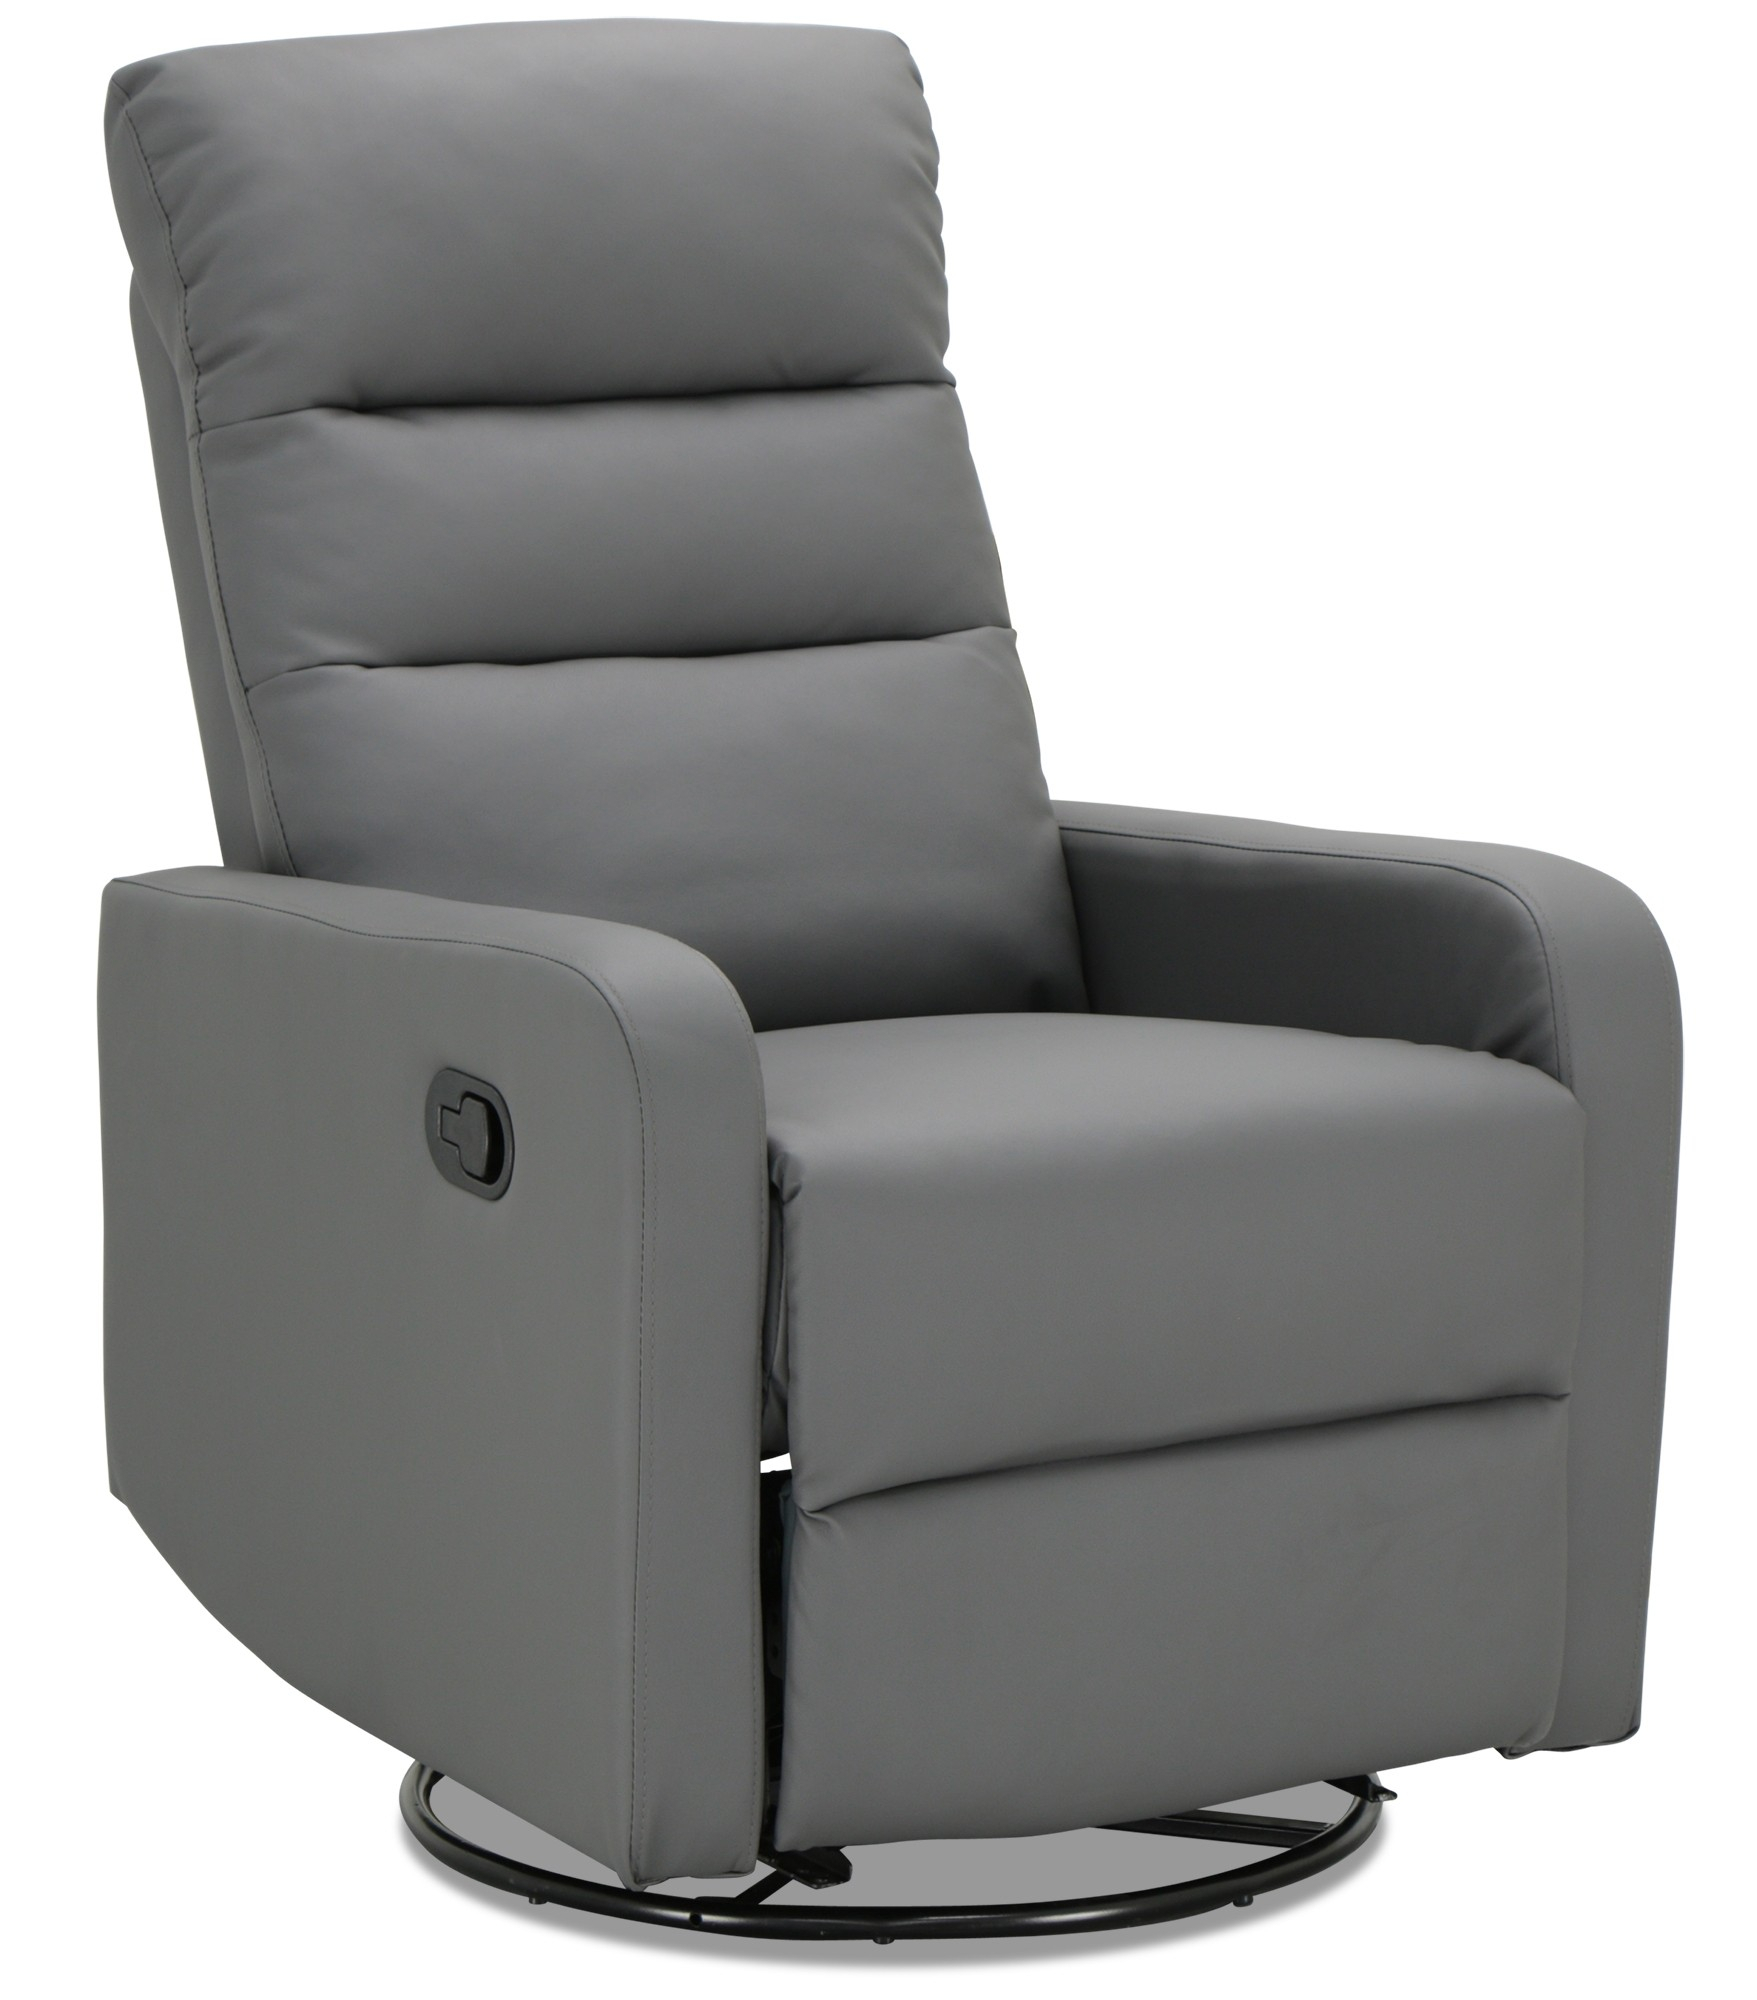 Rasco Recliner With Swivel In Pu Dark Grey | Furniture & Home Décor Within Dark Grey Swivel Chairs (View 13 of 25)